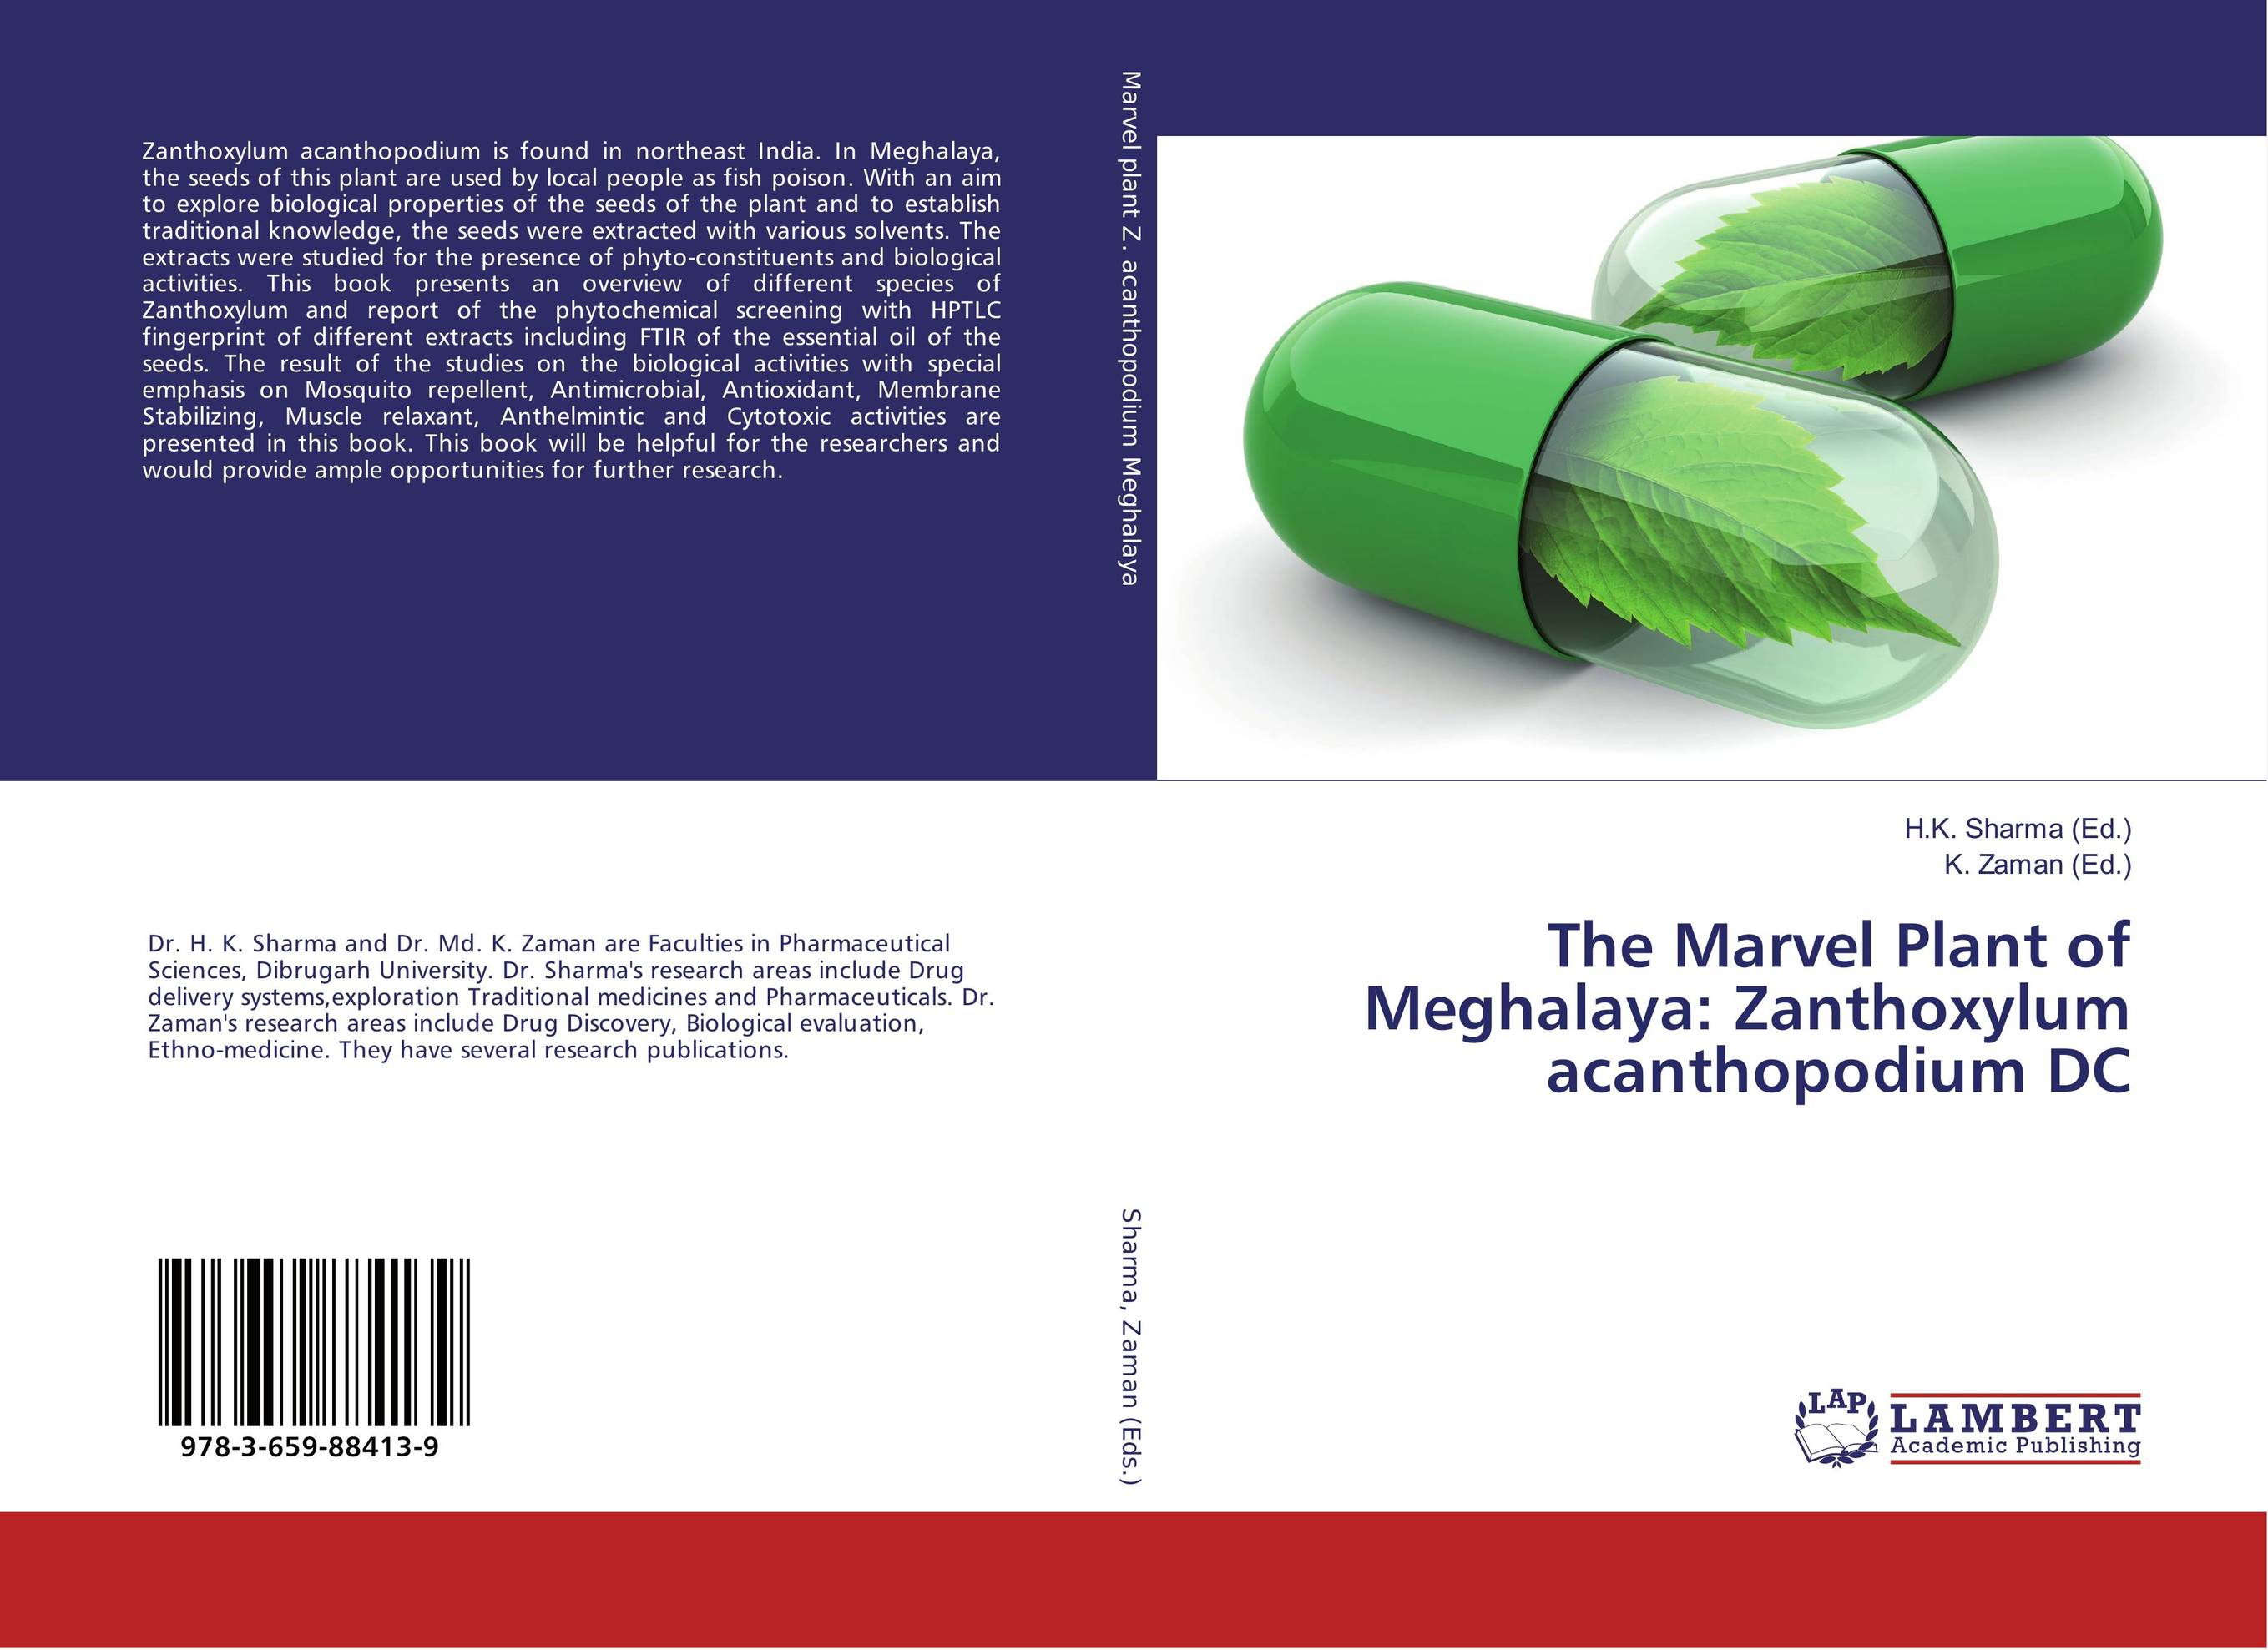 The Marvel Plant of Meghalaya: Zanthoxylum acanthopodium DC effect of medicinal plant extracts on the viability of protoscoleces